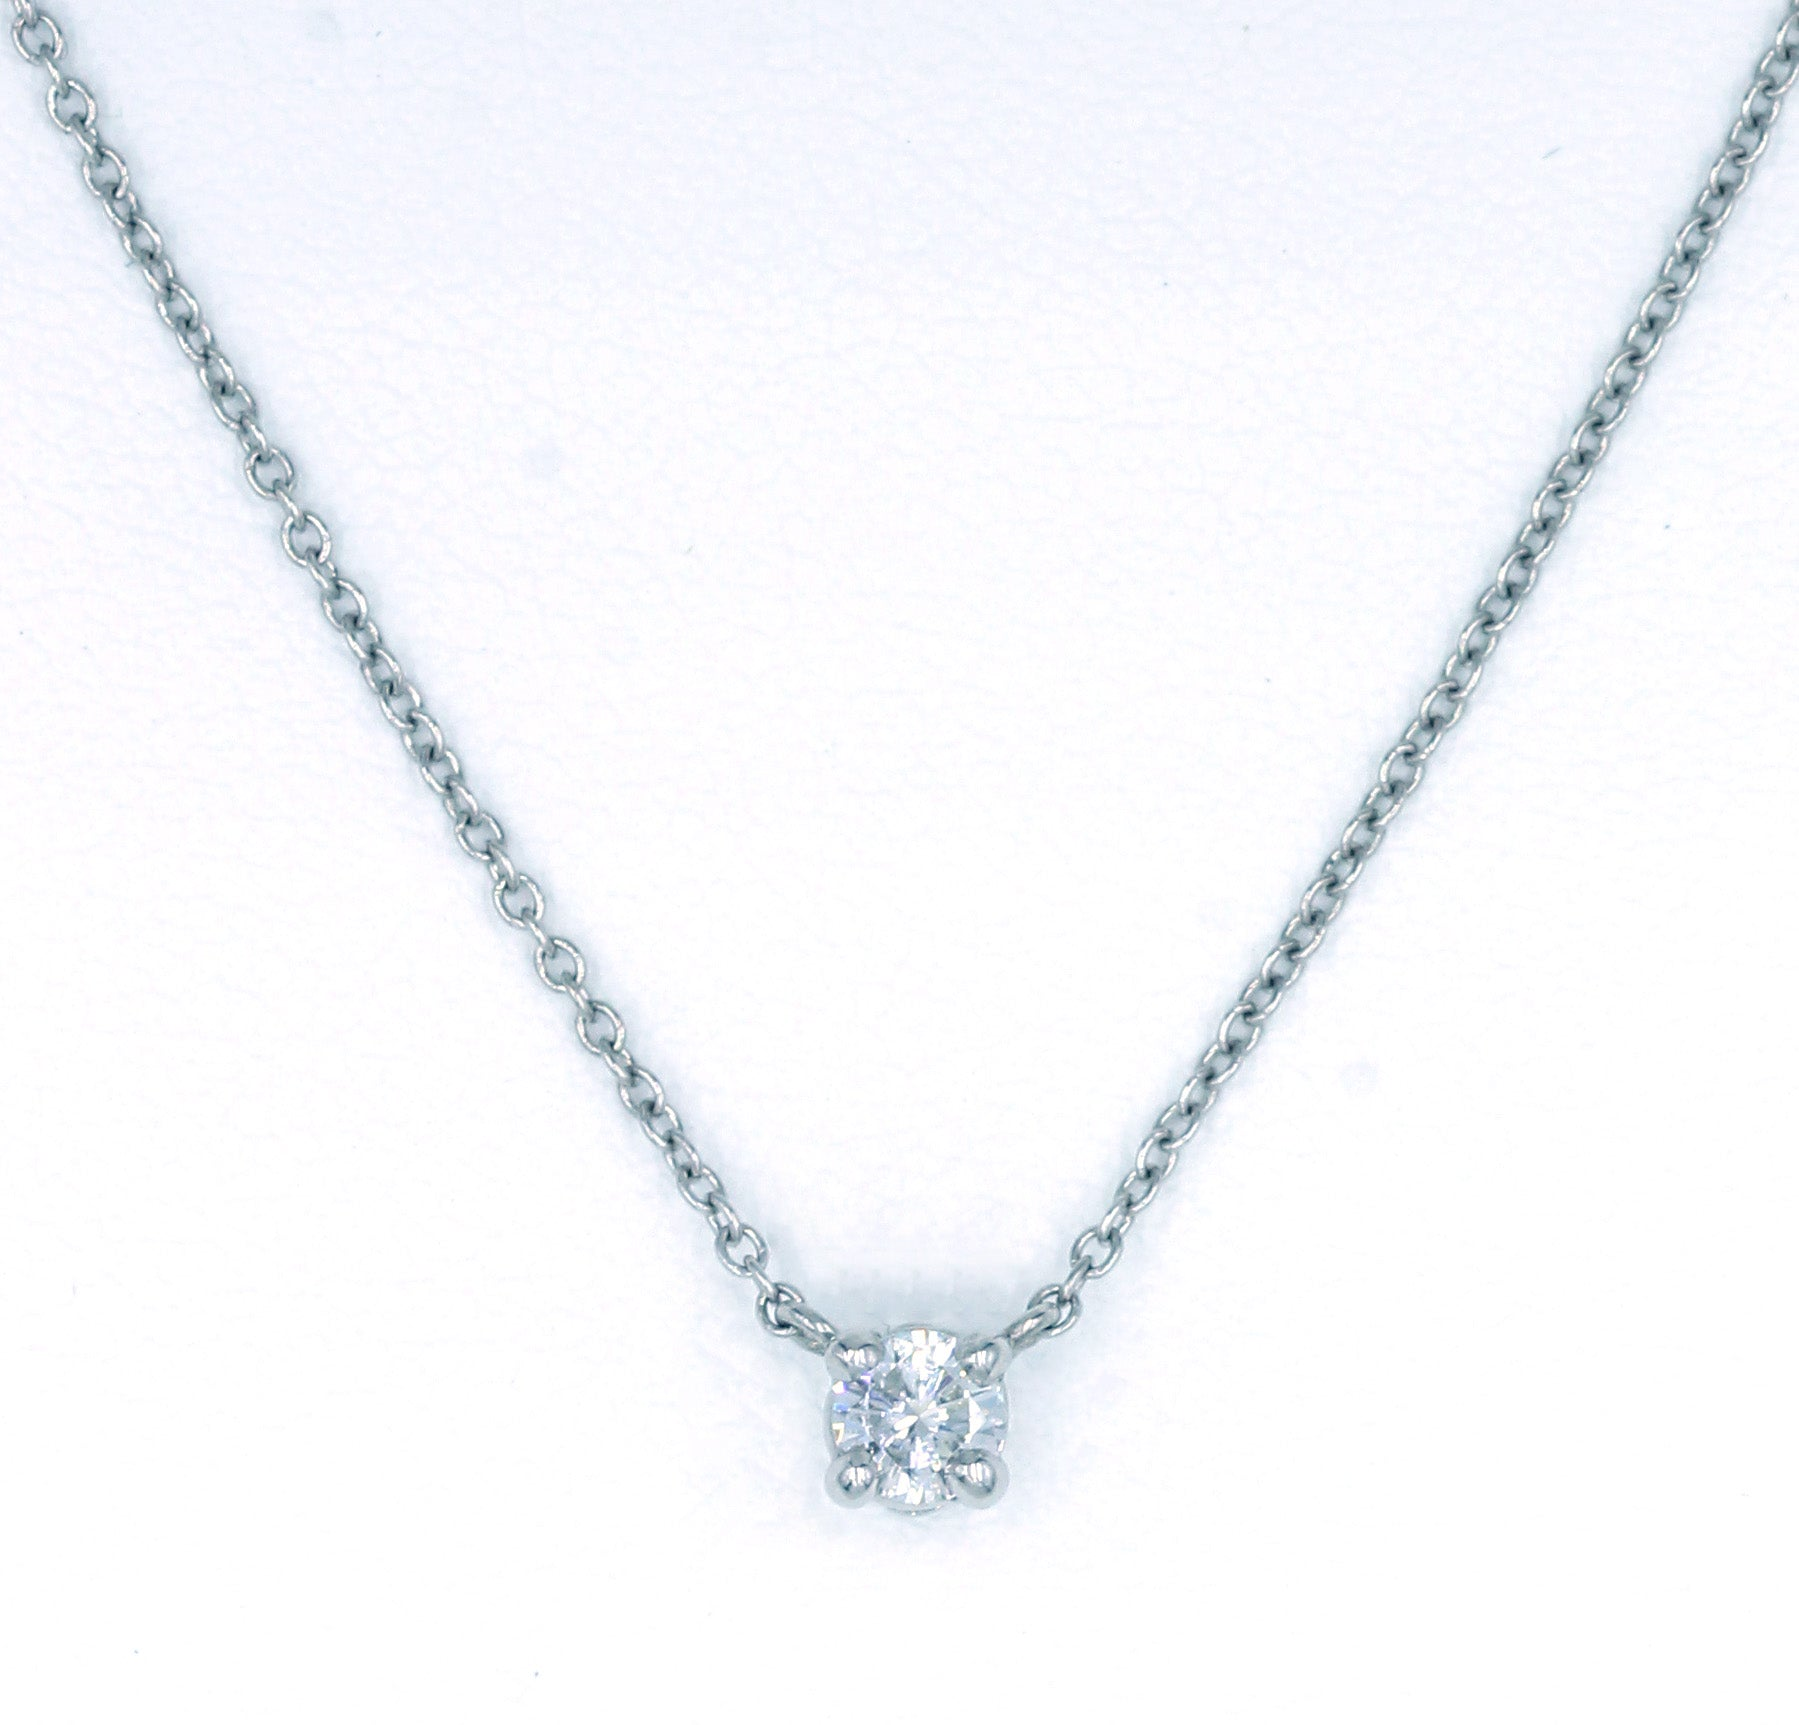 Deleuse Diamond Pendant Necklace, SOLD